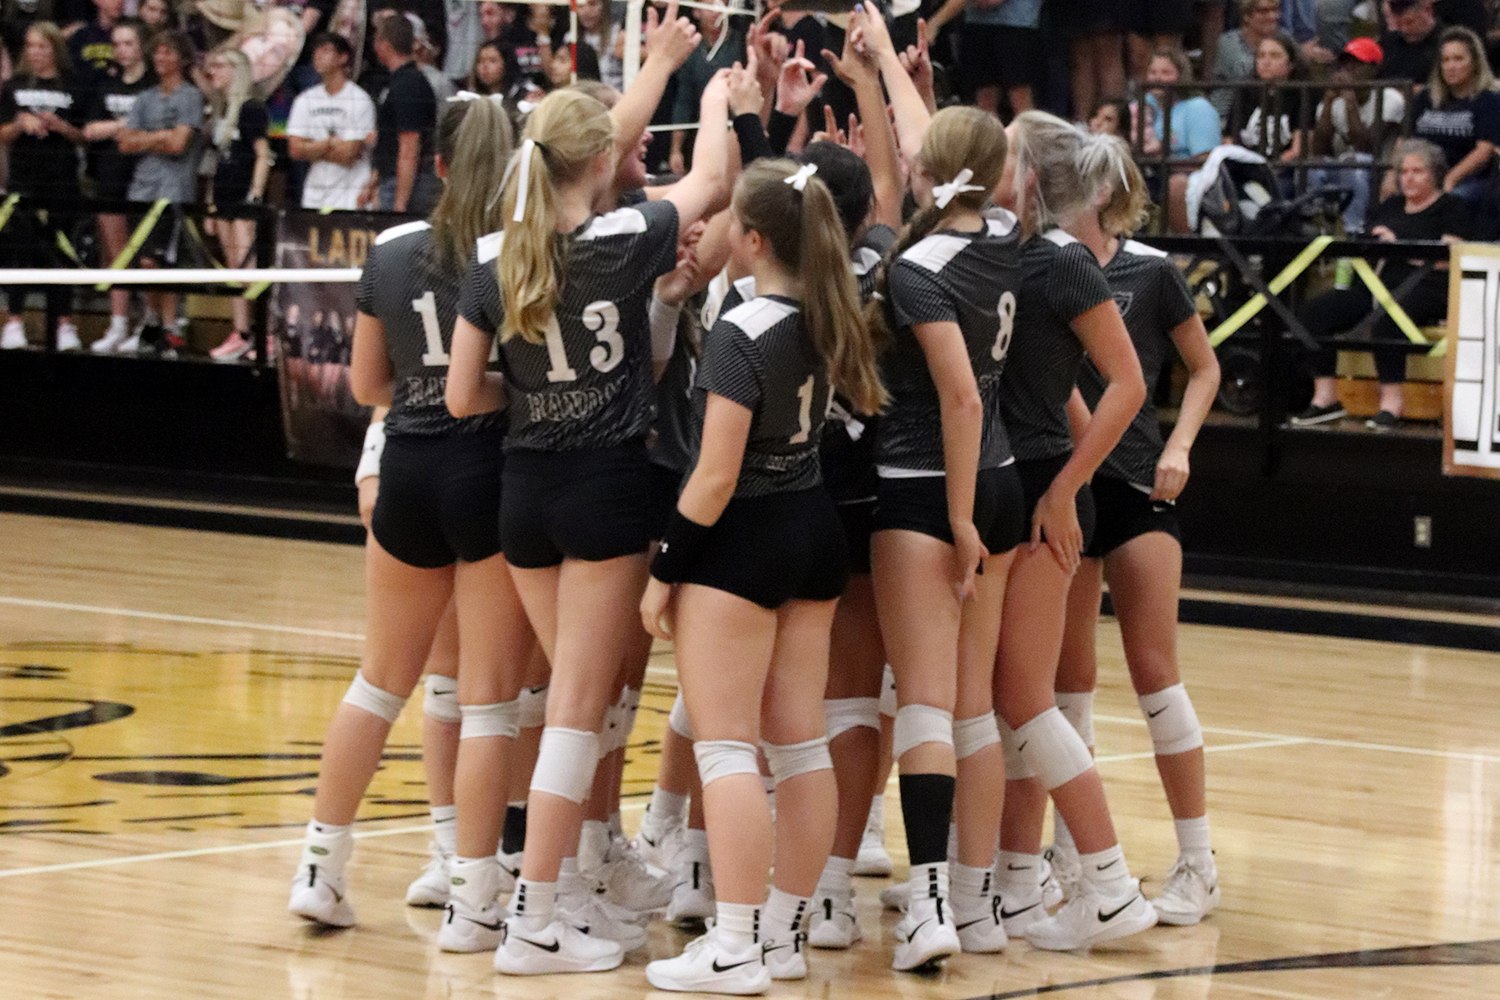 The varsity volleyball team huddles together during the Sept. 24 match.